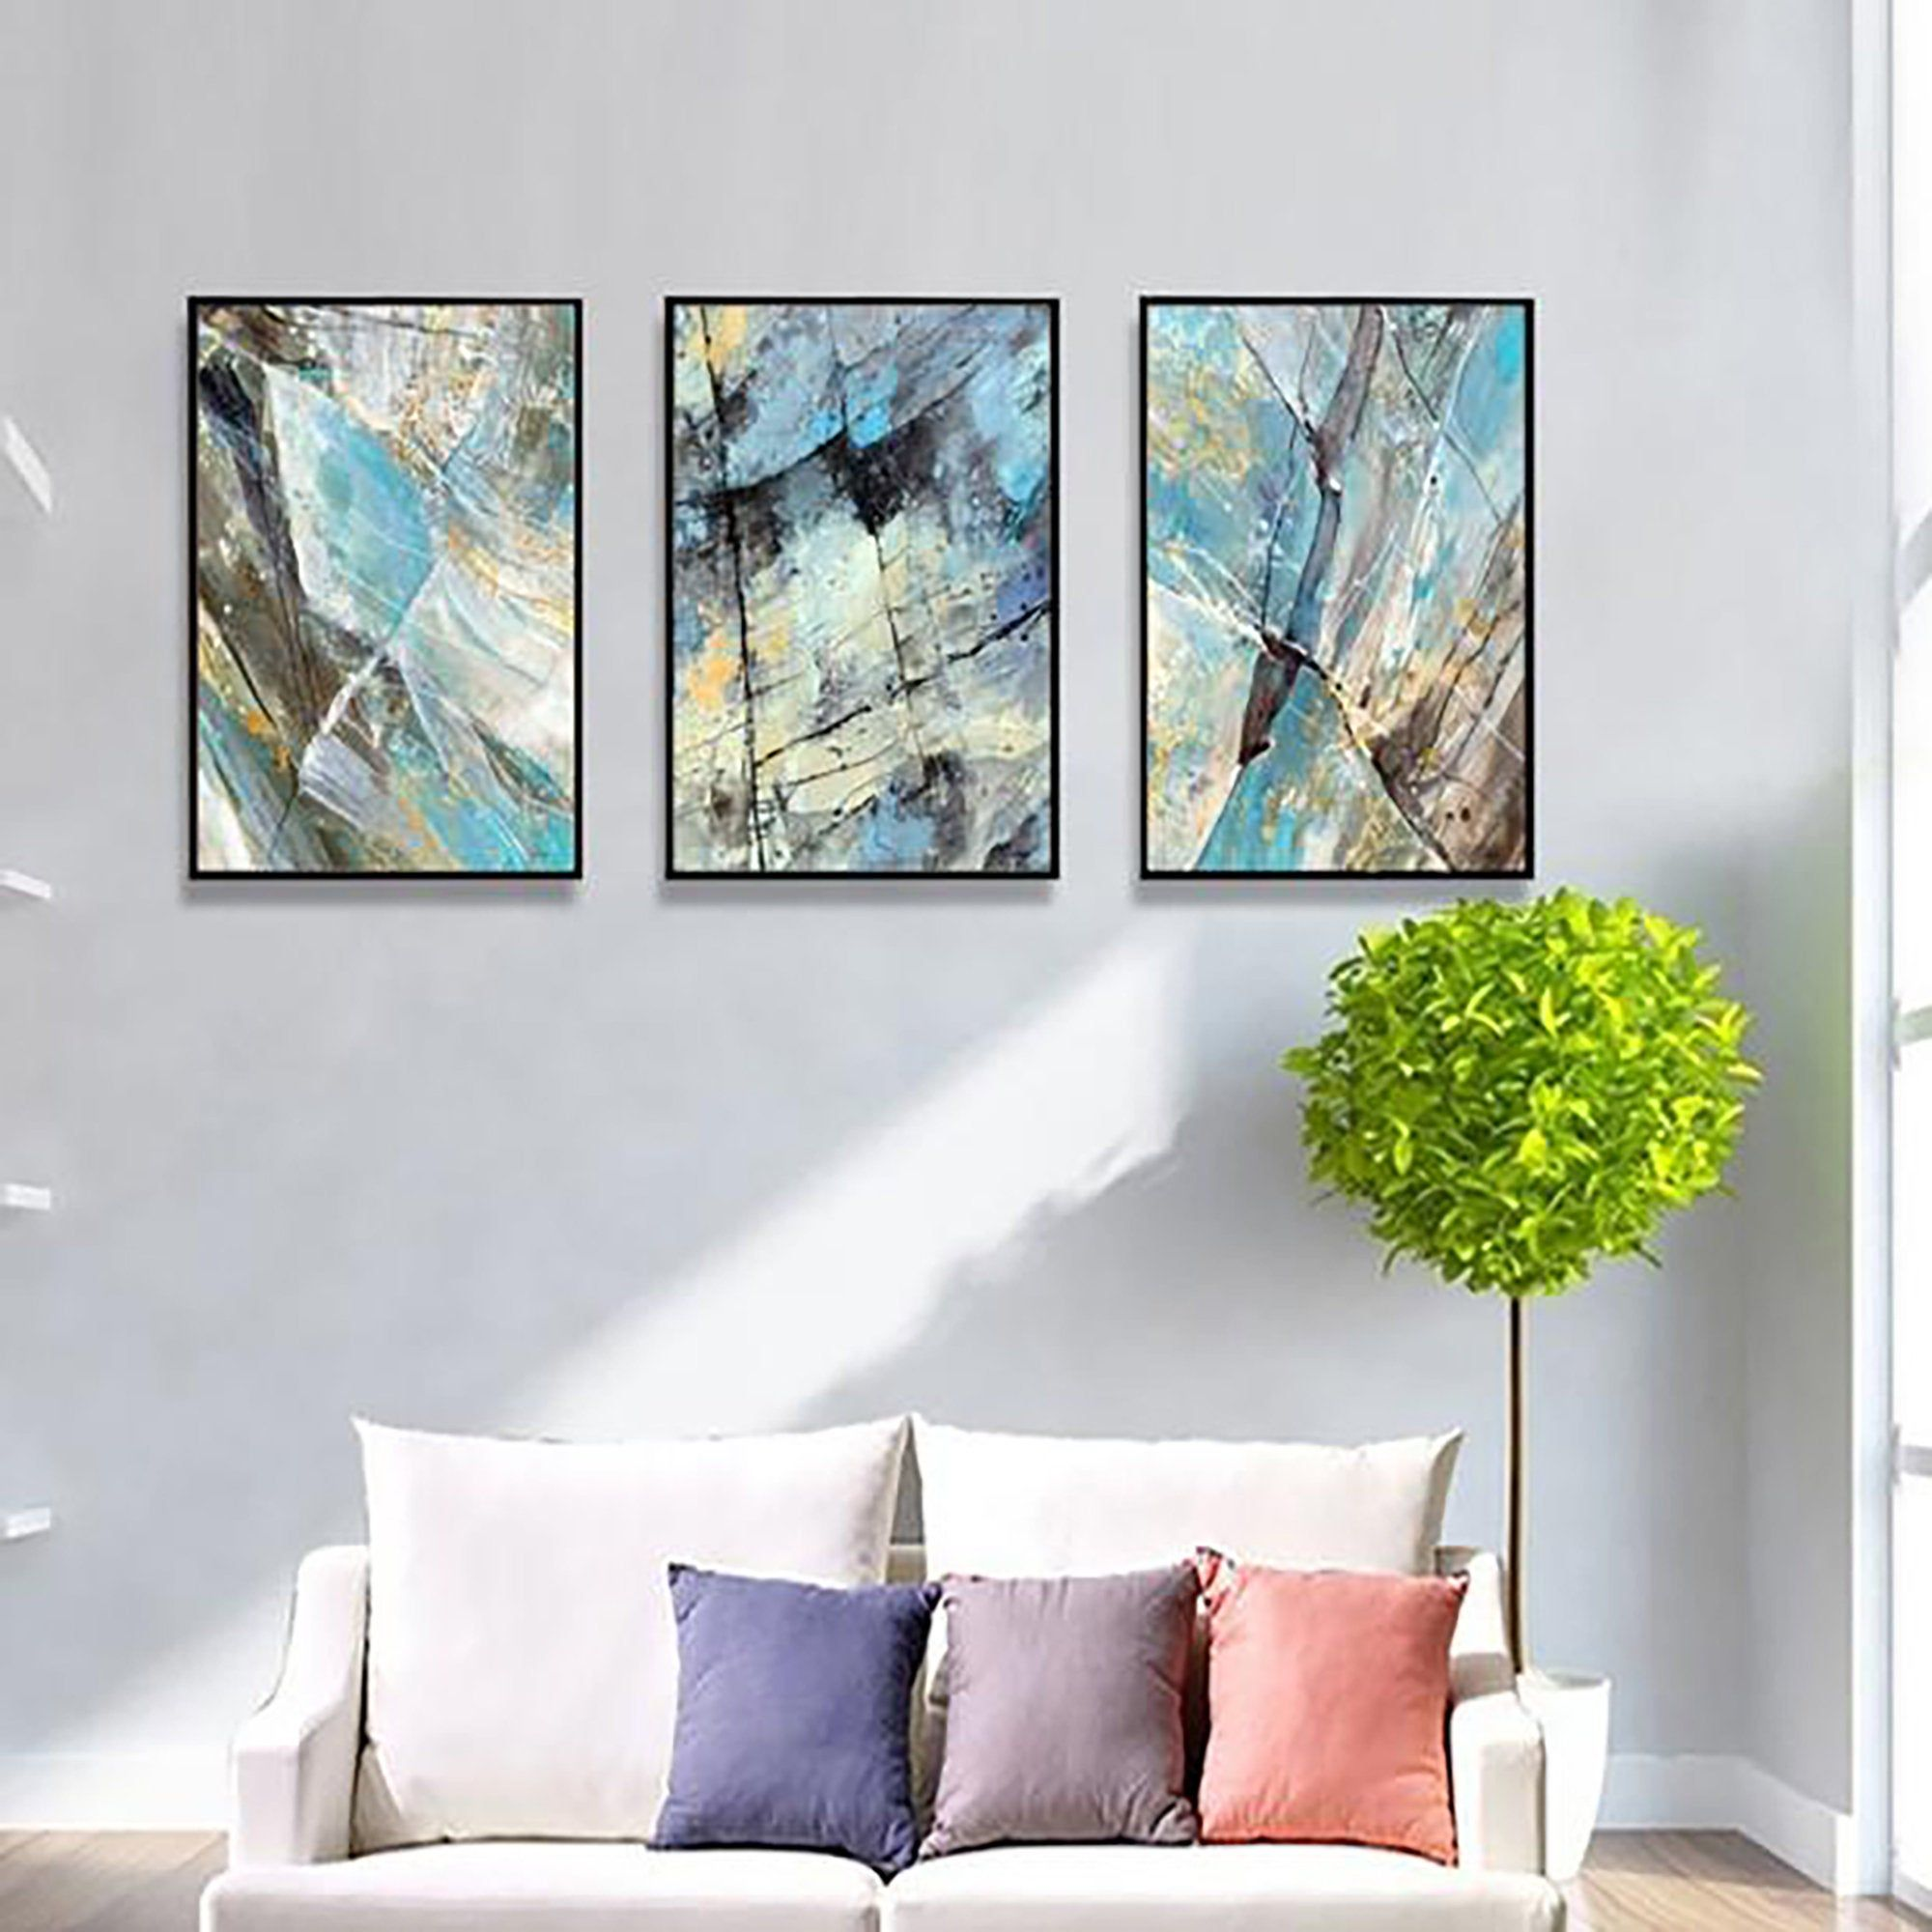 Nordic Modern Contracted Color Abstract Decorative Painting Canvas Paintings Living Room Bedroom Abstract Decorative Painting Decorative Painting Picture Wall #paintings #for #decoration #in #living #room